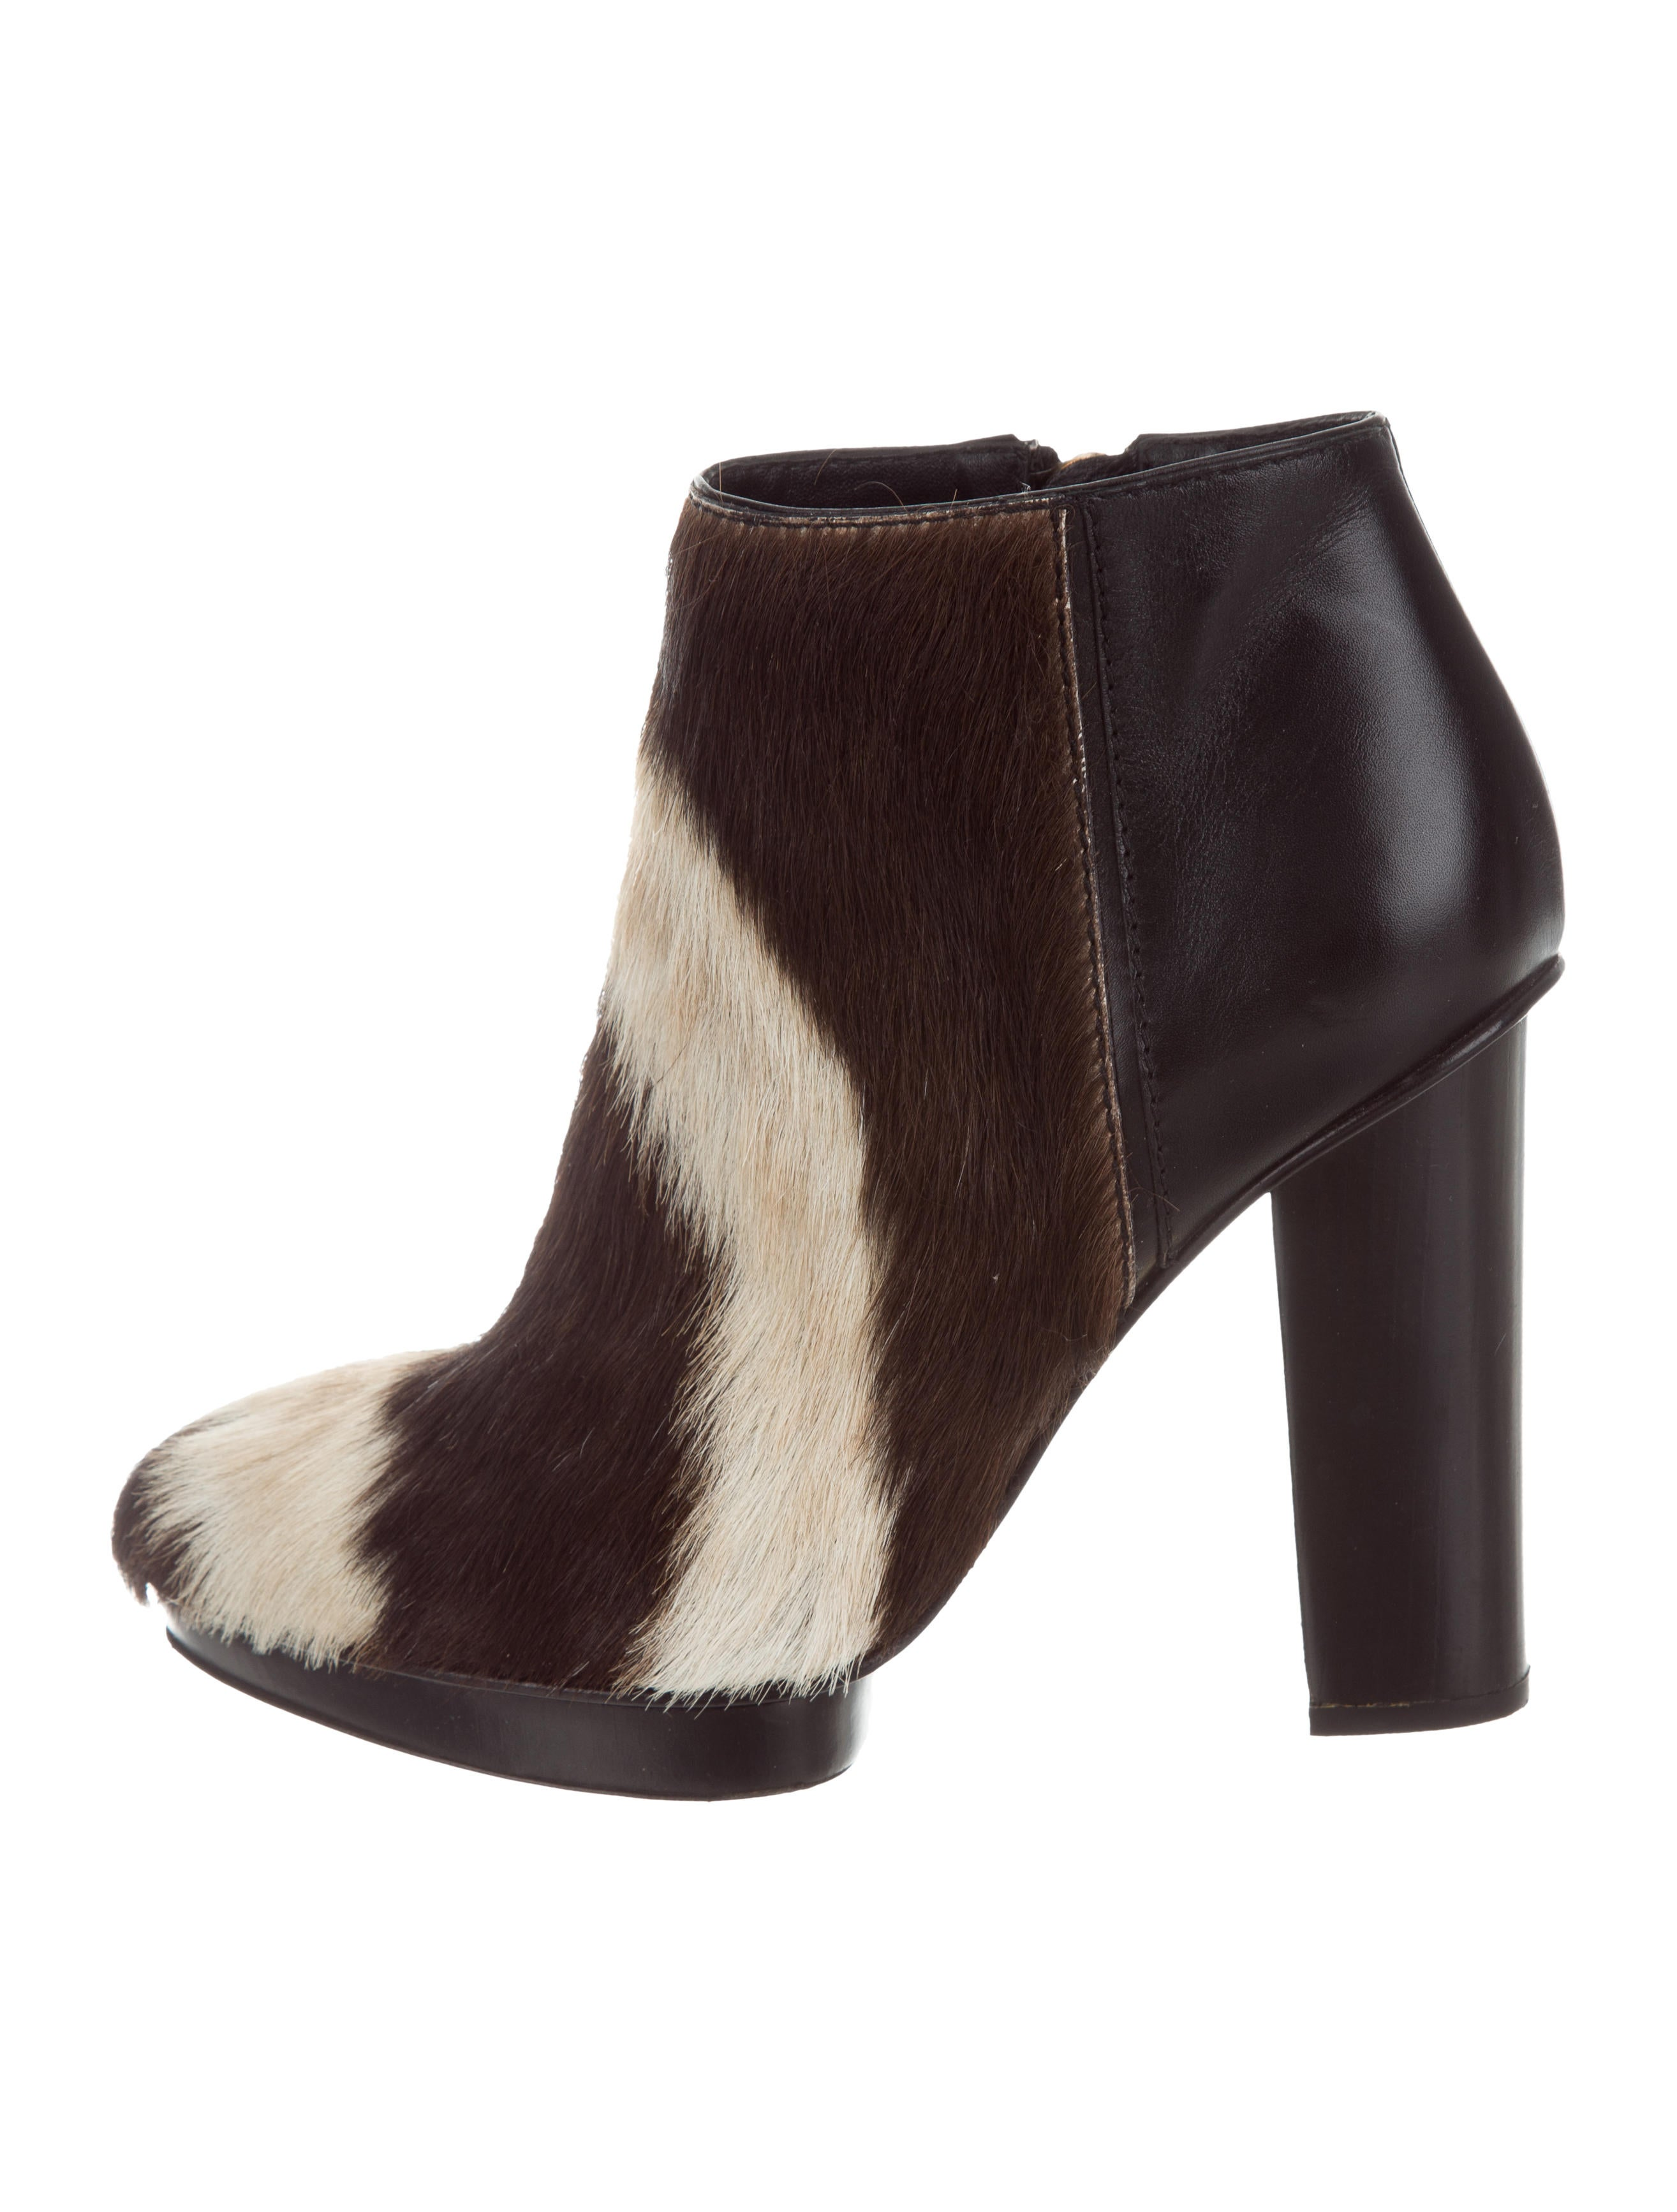 free shipping largest supplier Devi Kroell Ponyhair Printed Ankle Boots cheap online store Manchester WeshFCJ9O6